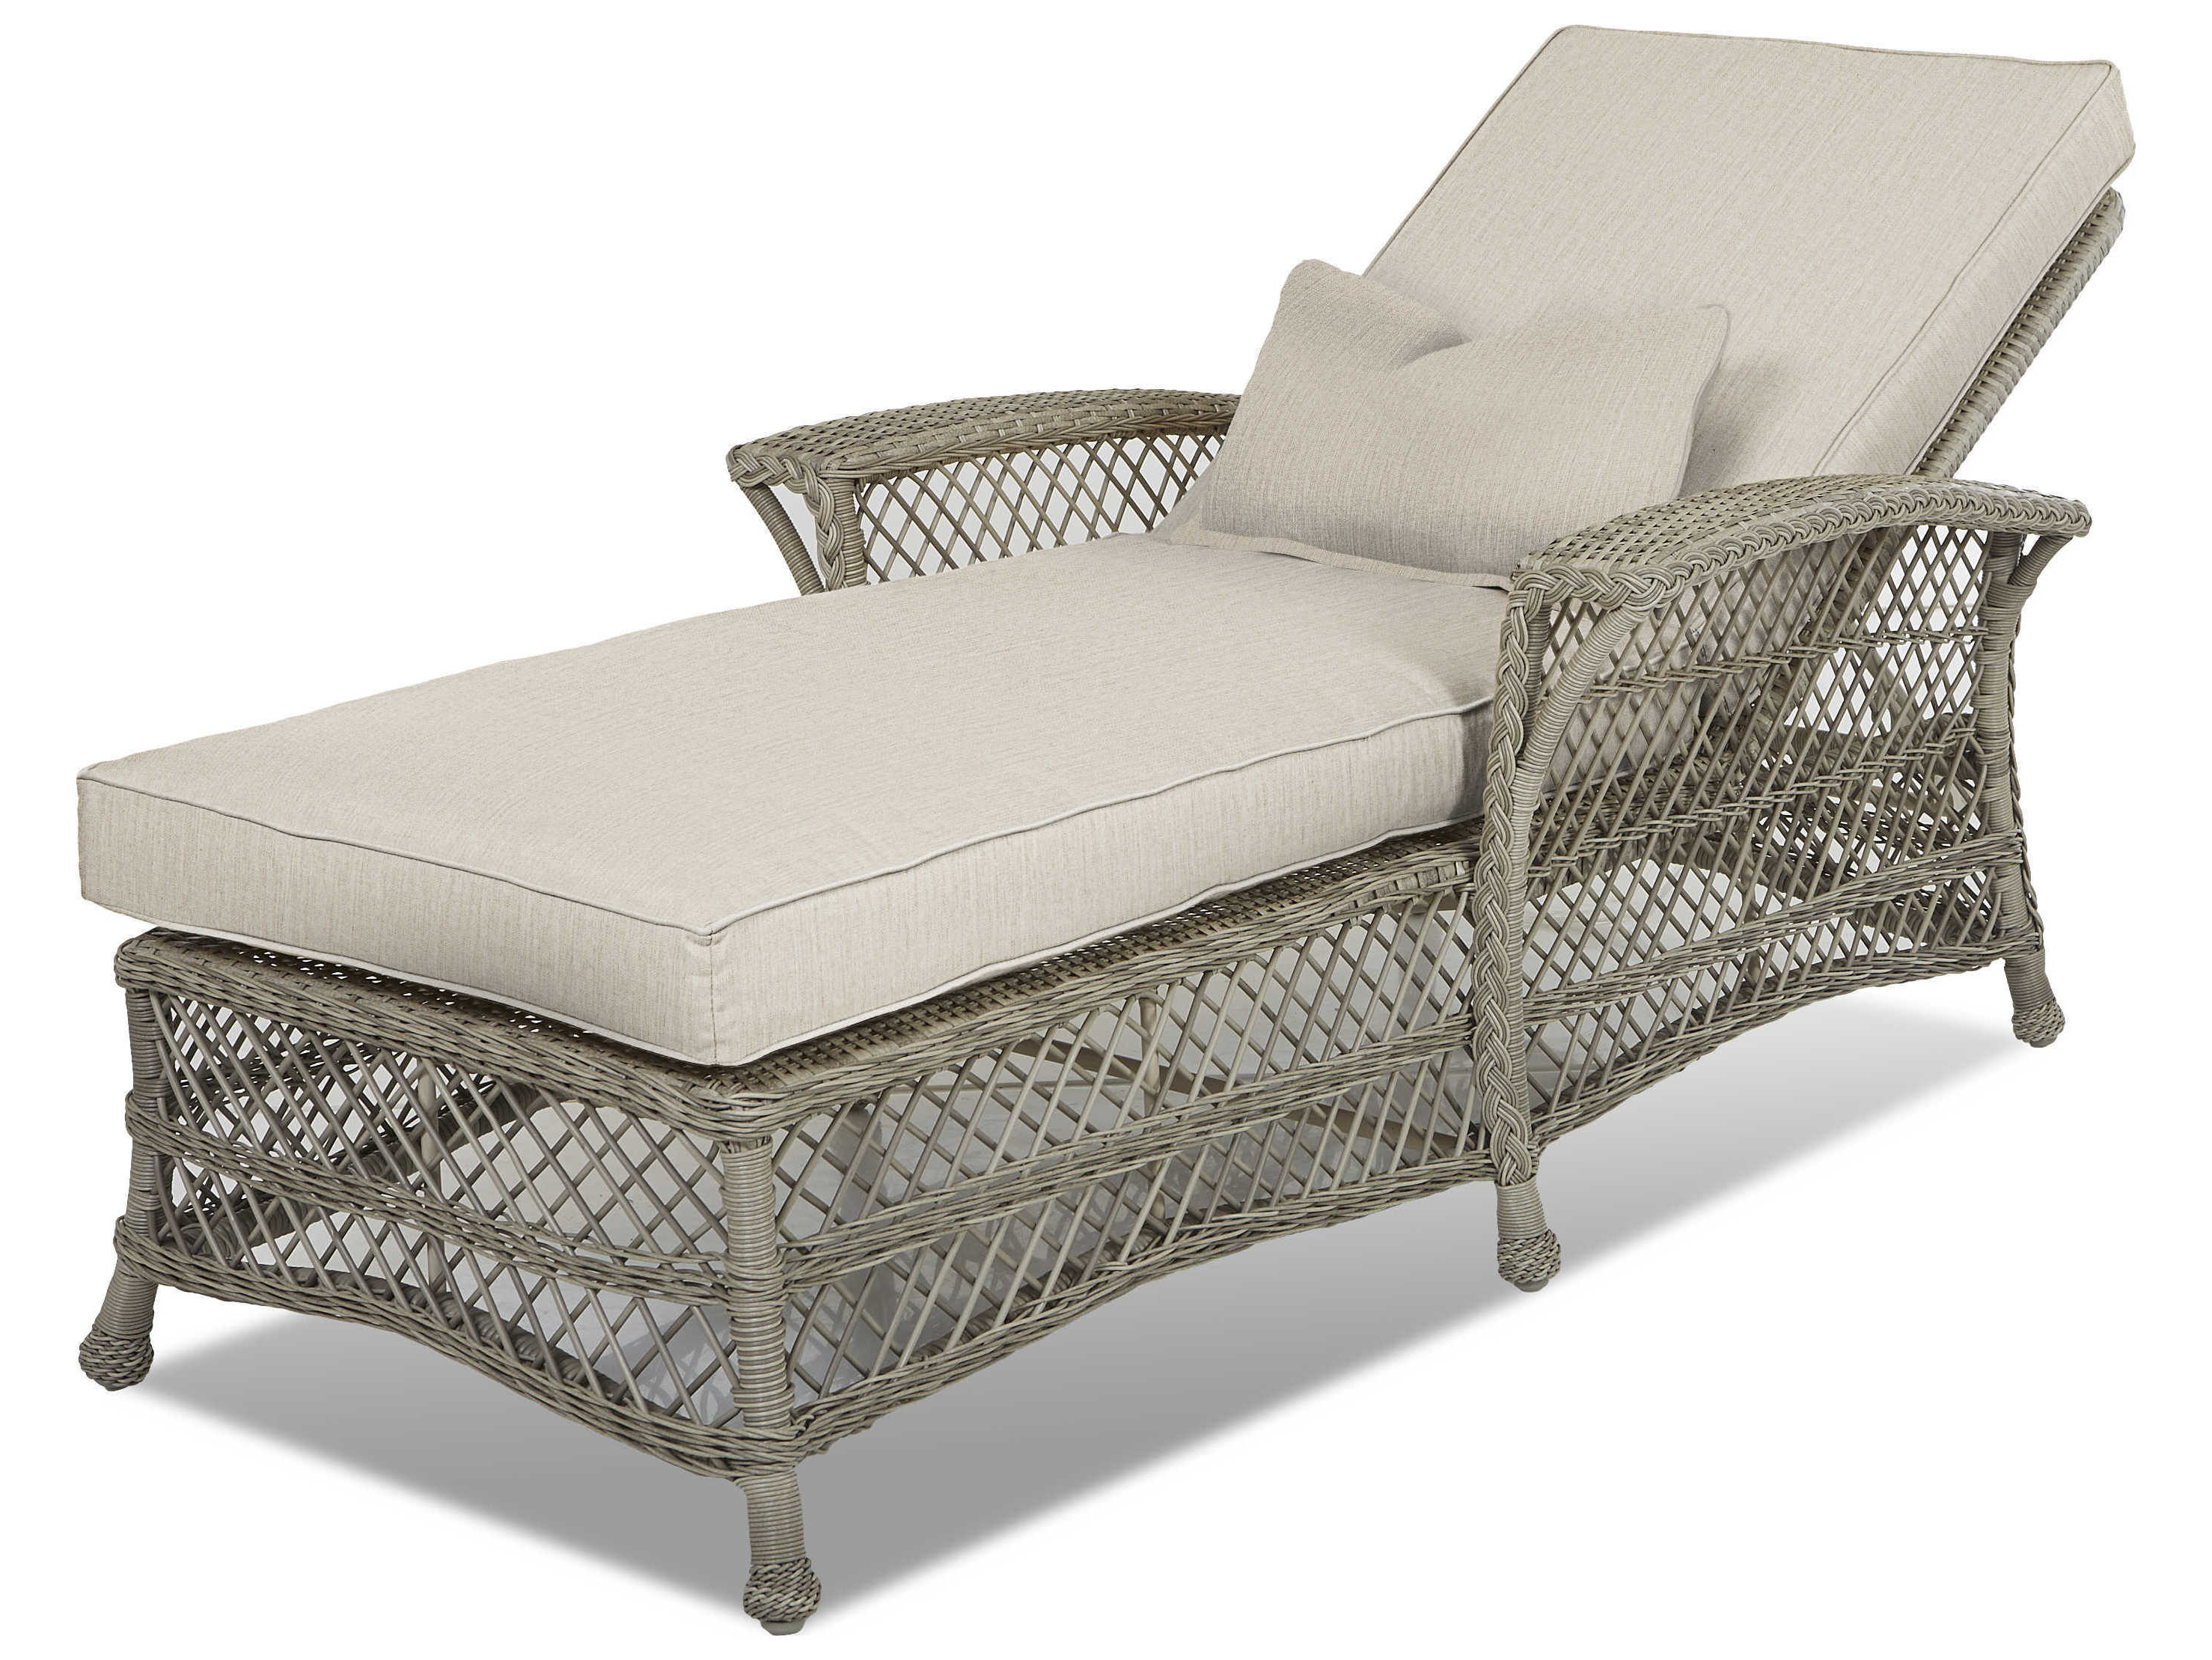 Outdoor Adjustable Rattan Wicker Chaise Pool Chairs With Cushions Regarding Most Current Klaussner Willow Wicker Cushion Chaise Lounge (View 16 of 25)